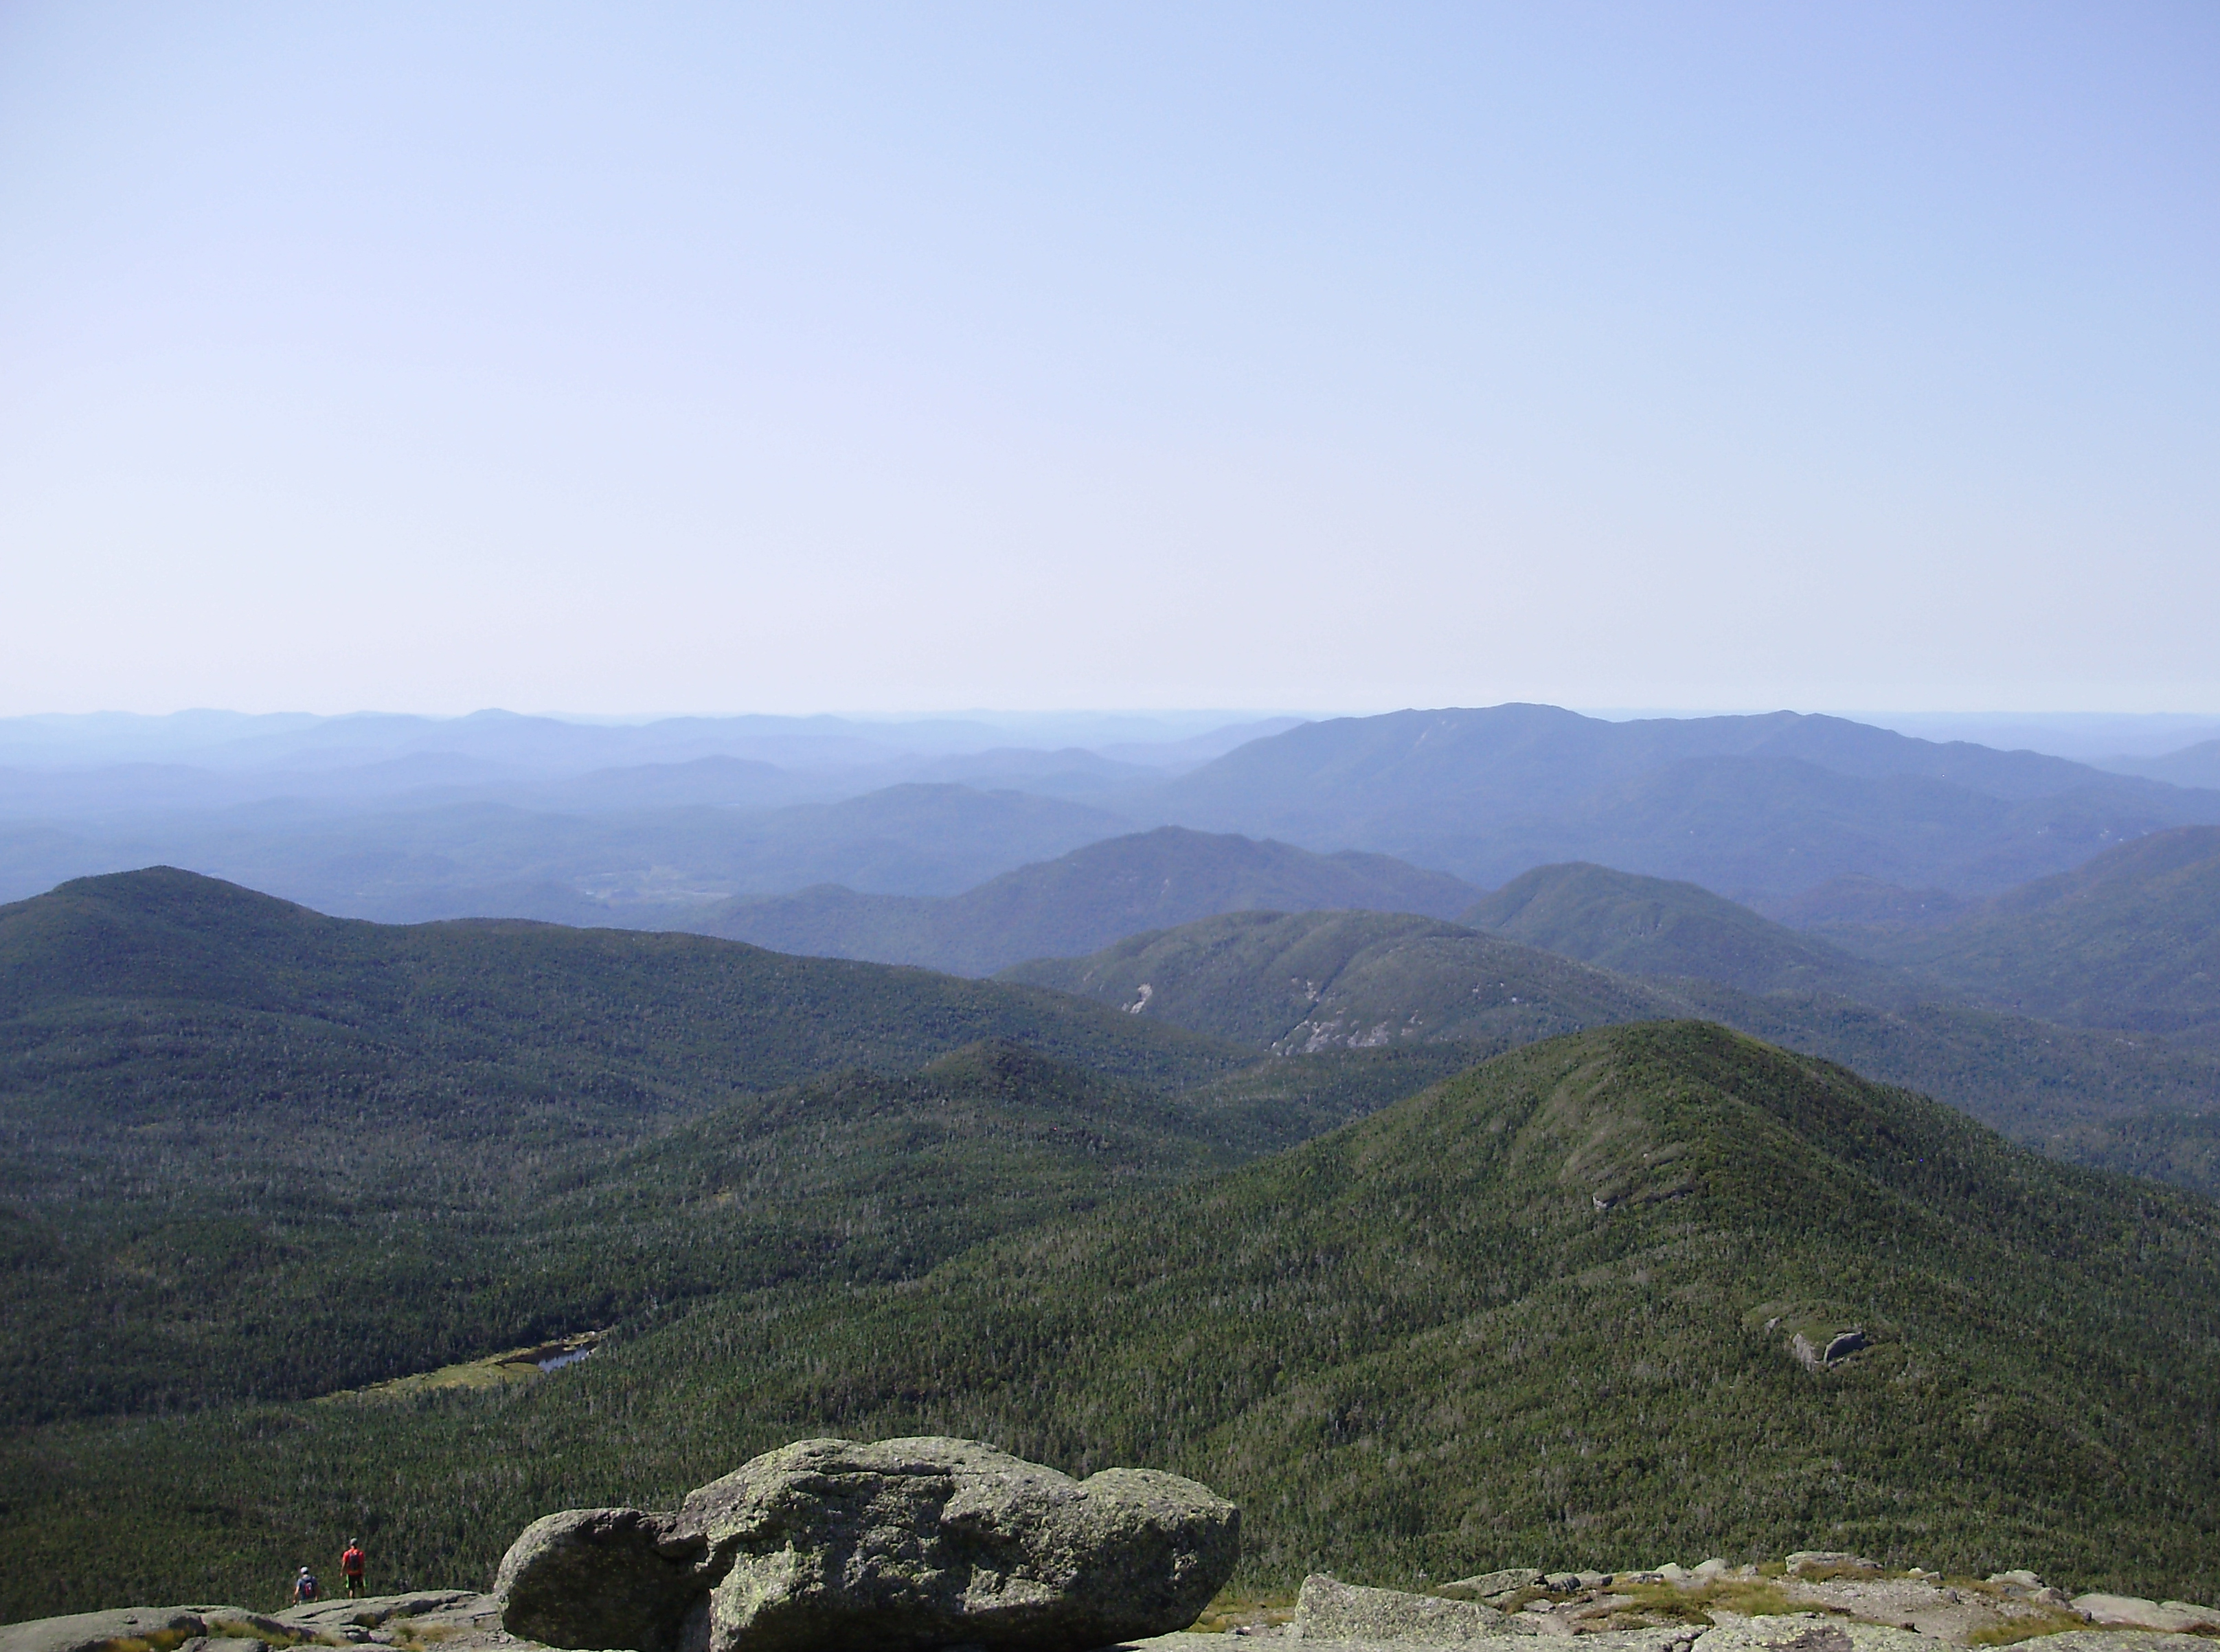 New york essex county keene - File 2016 09 04 12 41 00 View West Southwest From The